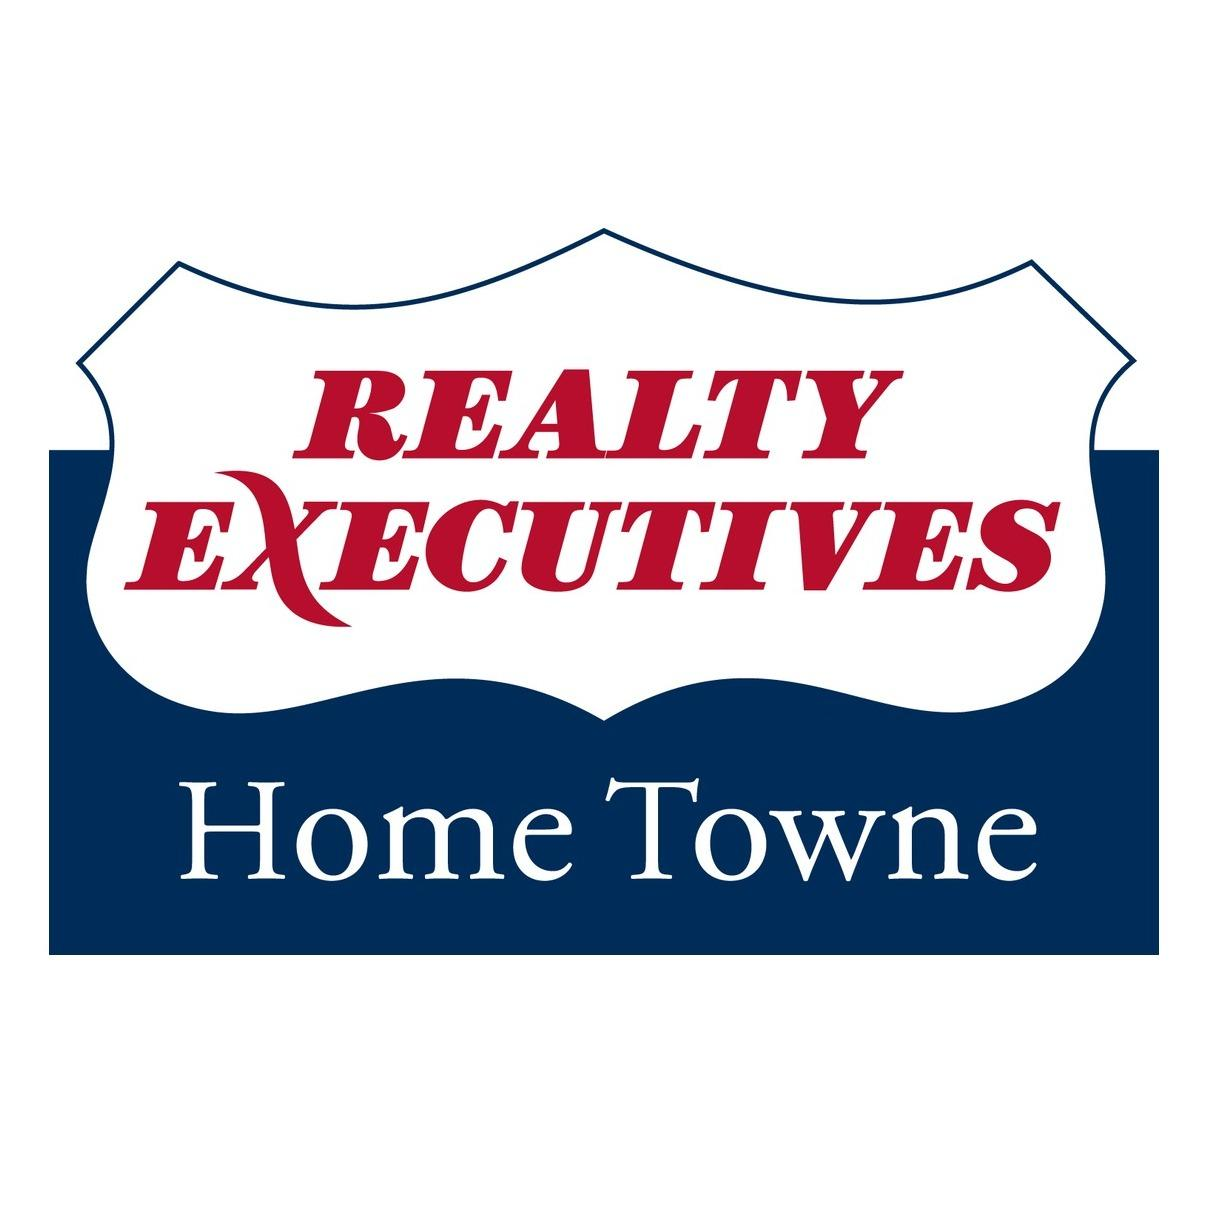 Joanne Sisson | Realty Executives Home Towne - Washington Twp, MI - Real Estate Agents